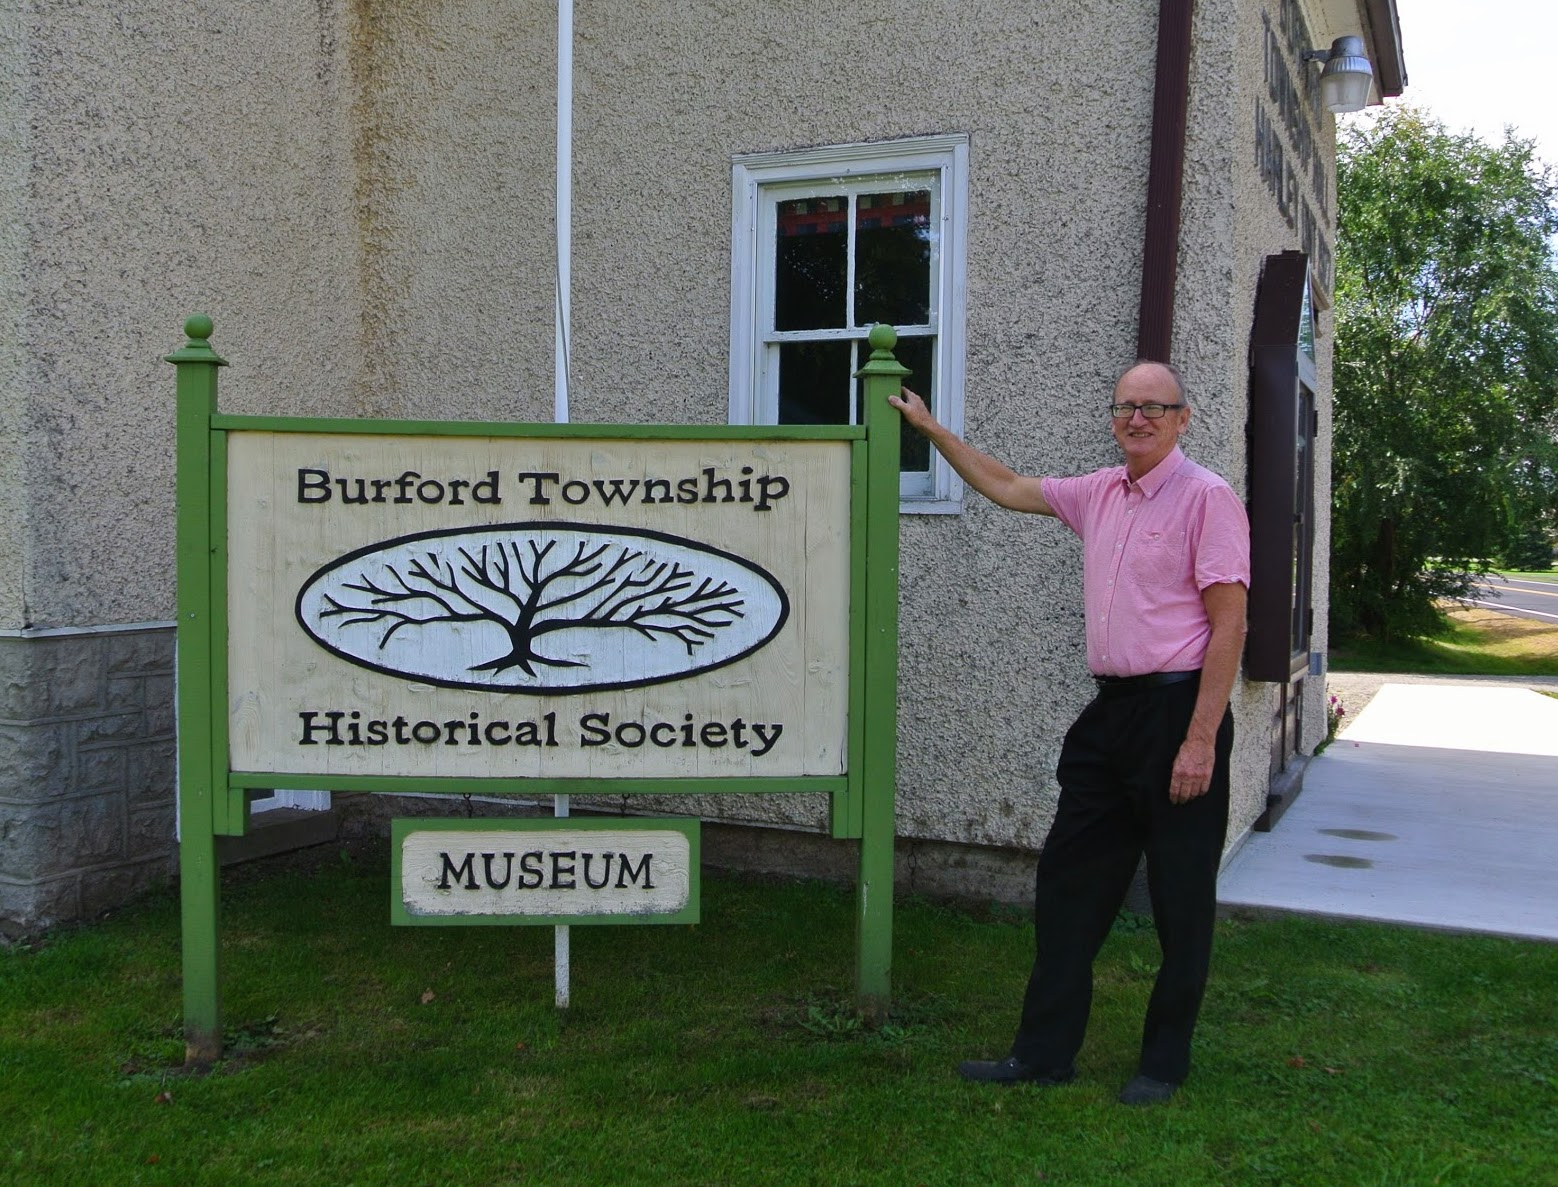 Burford Township Historical Society - Robert supports the dedicated volunteers who keep our history and heritage alive. Visit our Museum, make a donation and take a tour of our past.